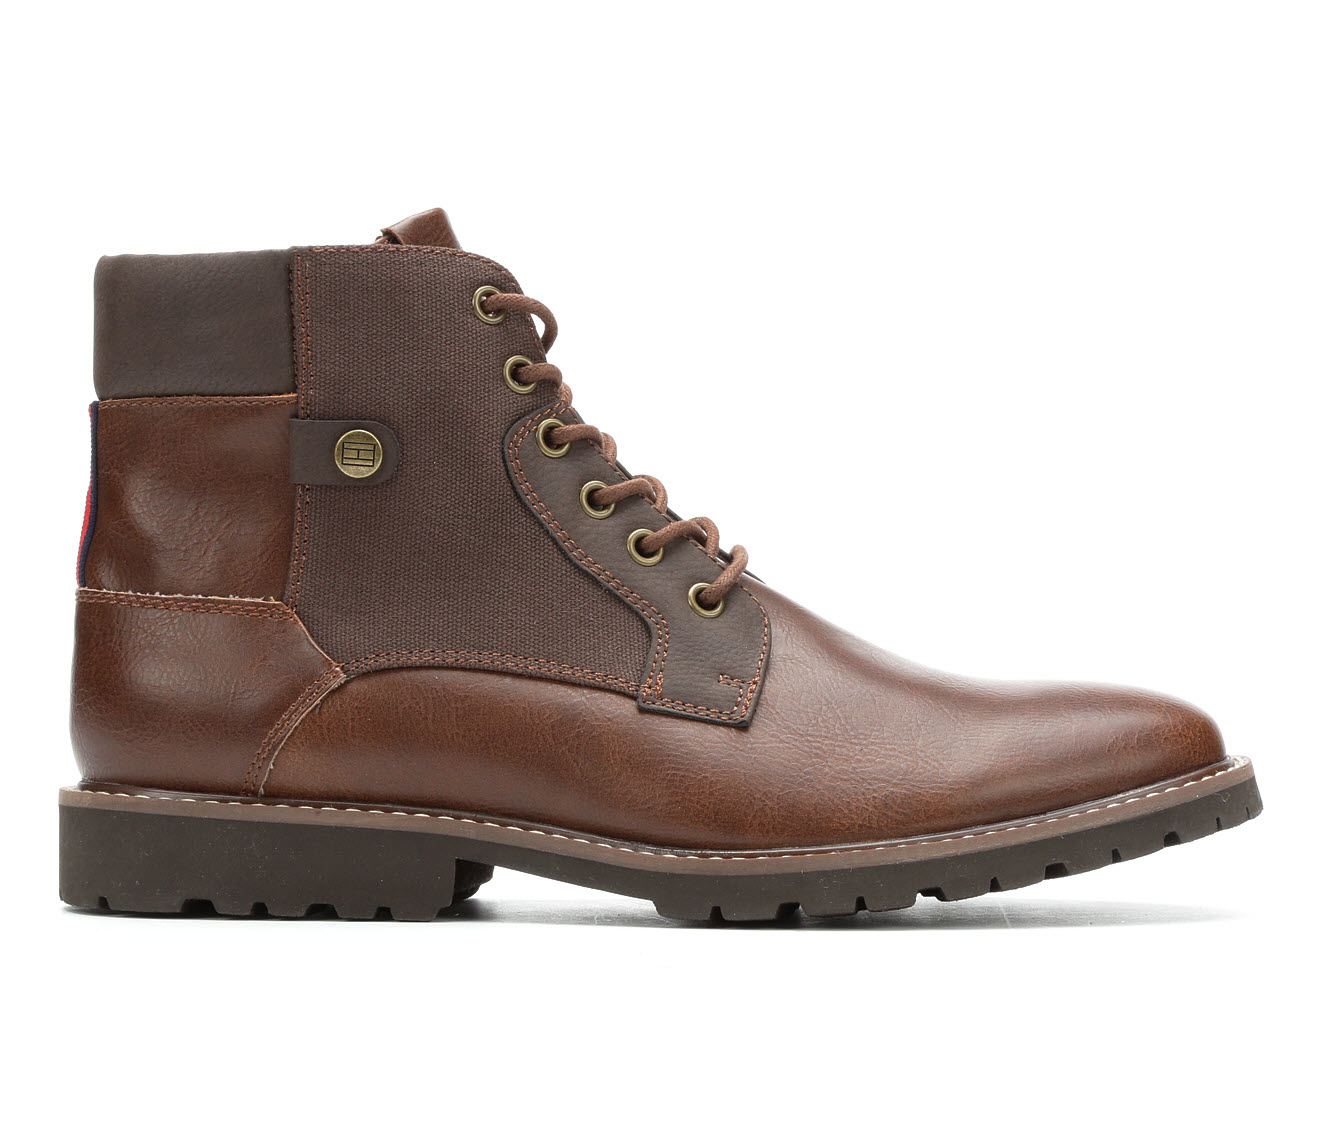 Tommy Hilfiger Bantel Men's Boots (Brown Faux Leather)